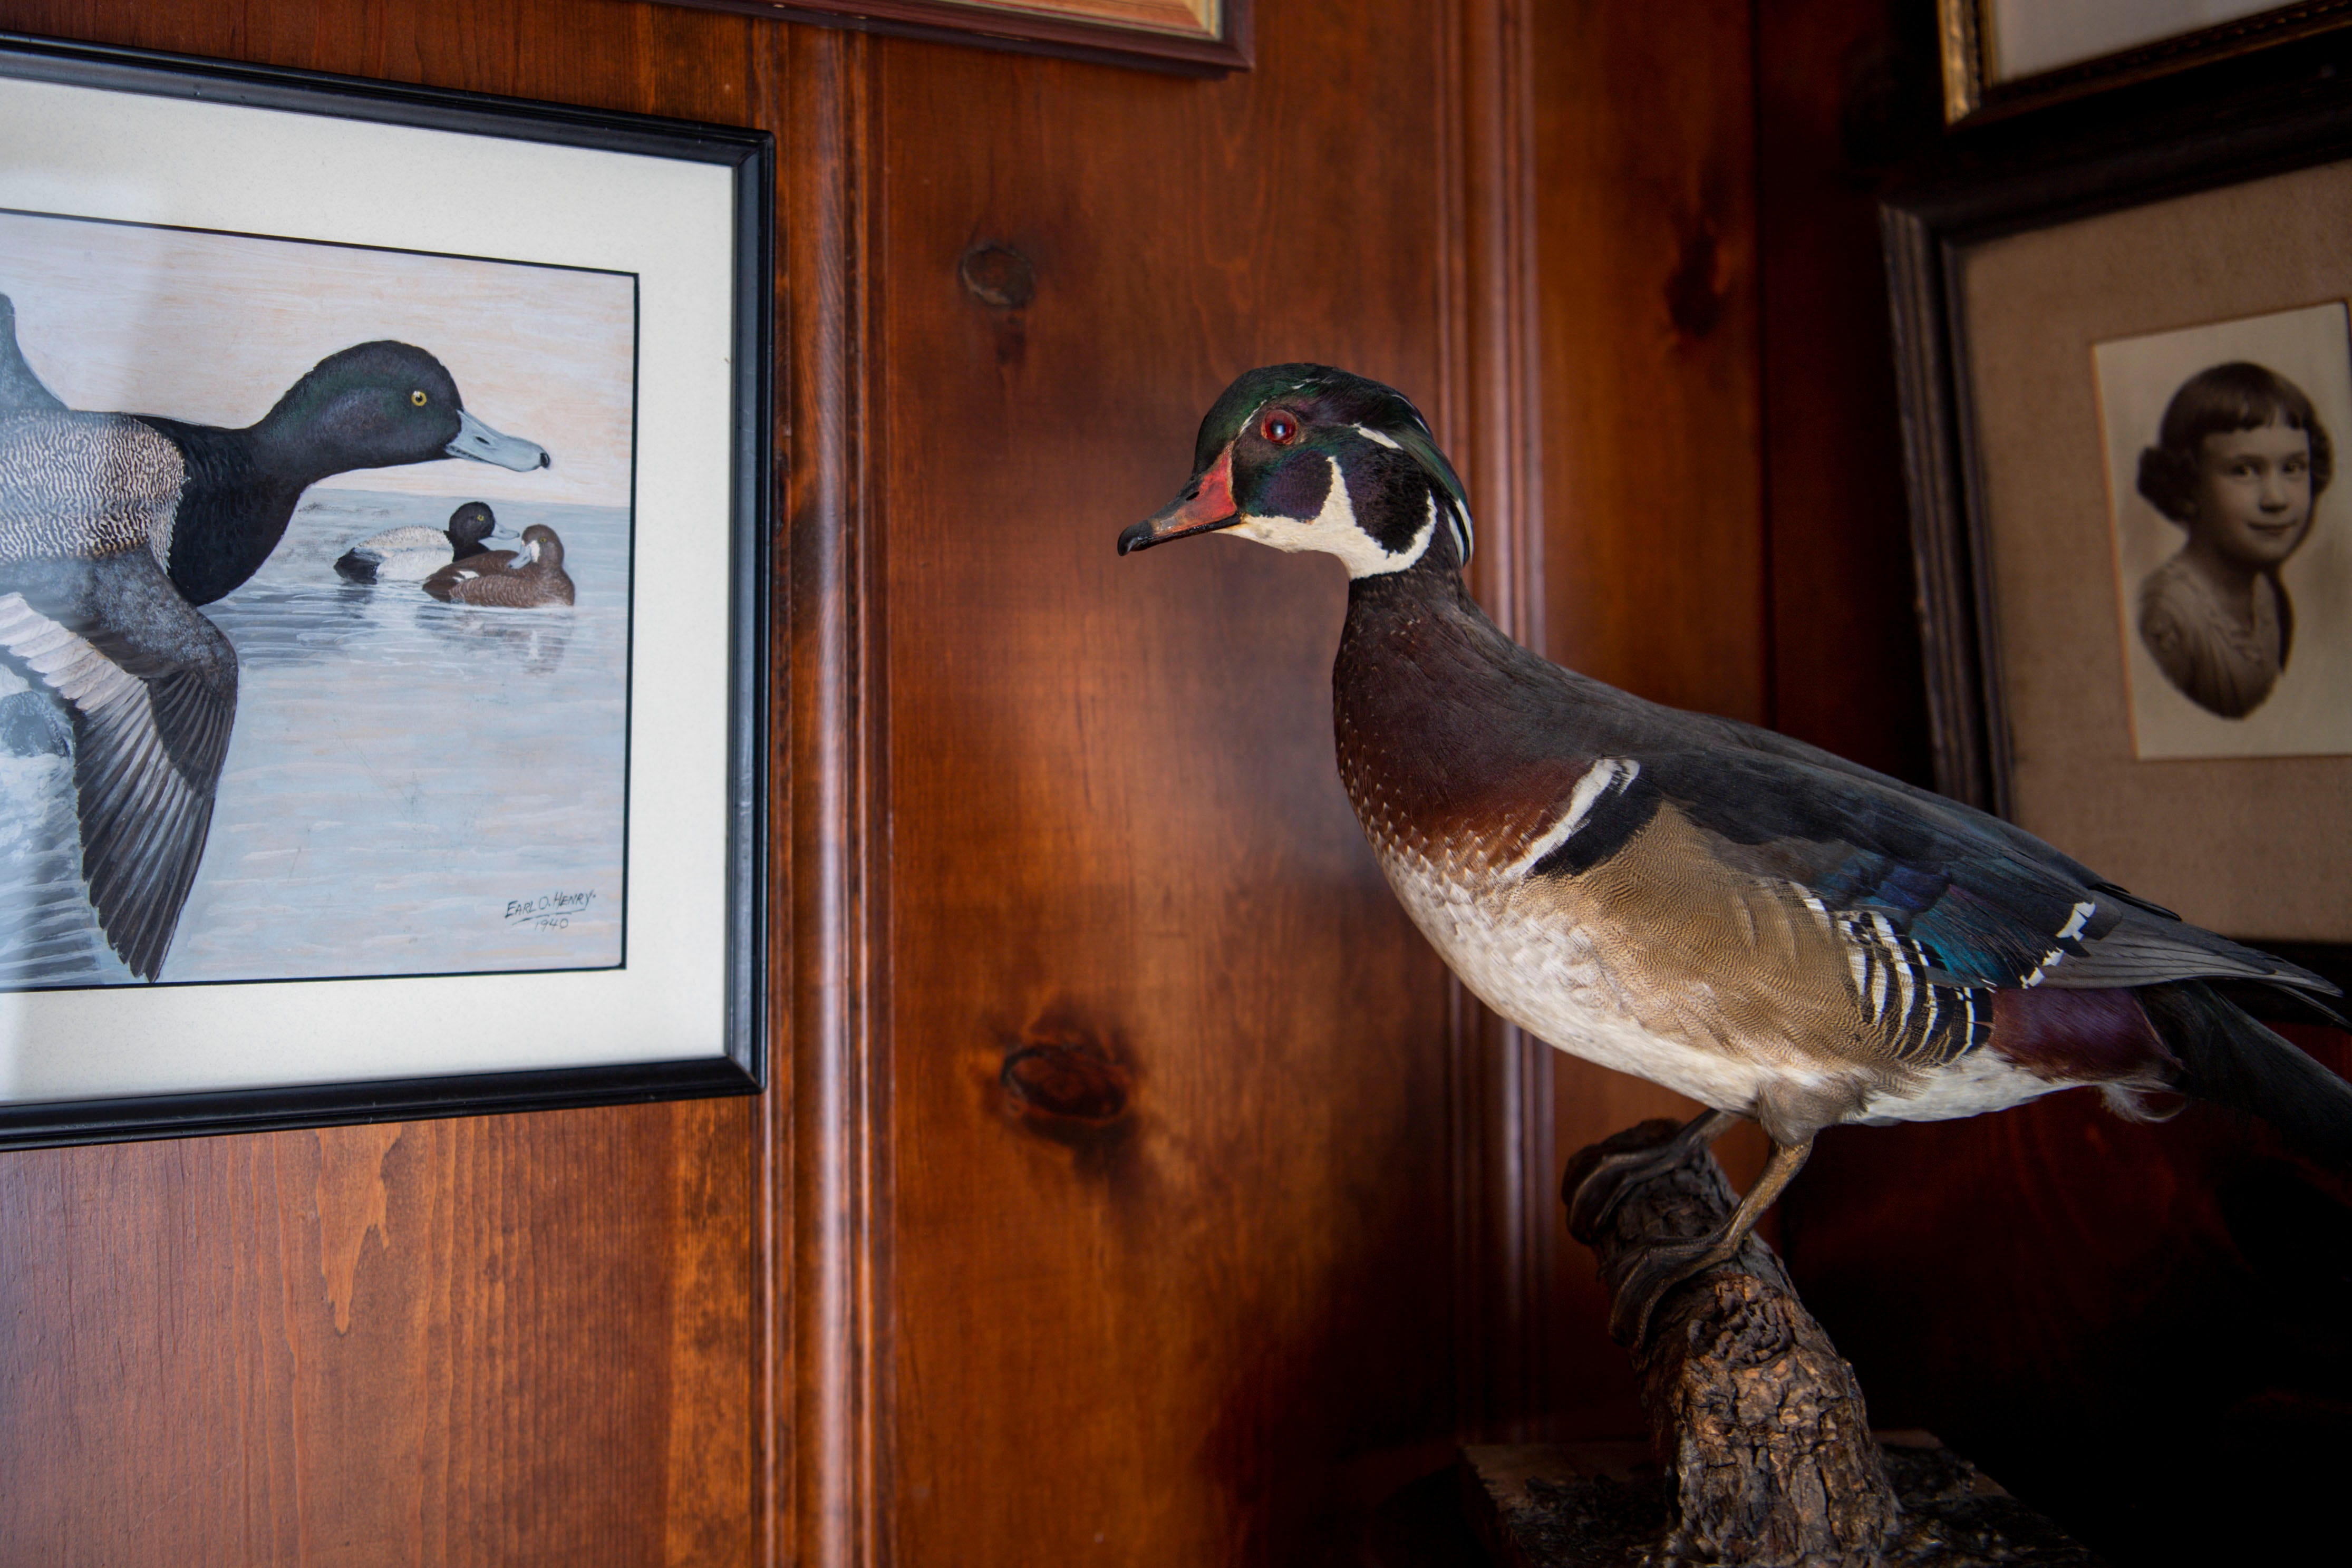 A duck hunted and taxidermied by Earl Henry, Sr. is seen on display in his son Earl Henry, Jr.'s, home in Belle Meade, Tenn., on Monday, July 19, 2021.